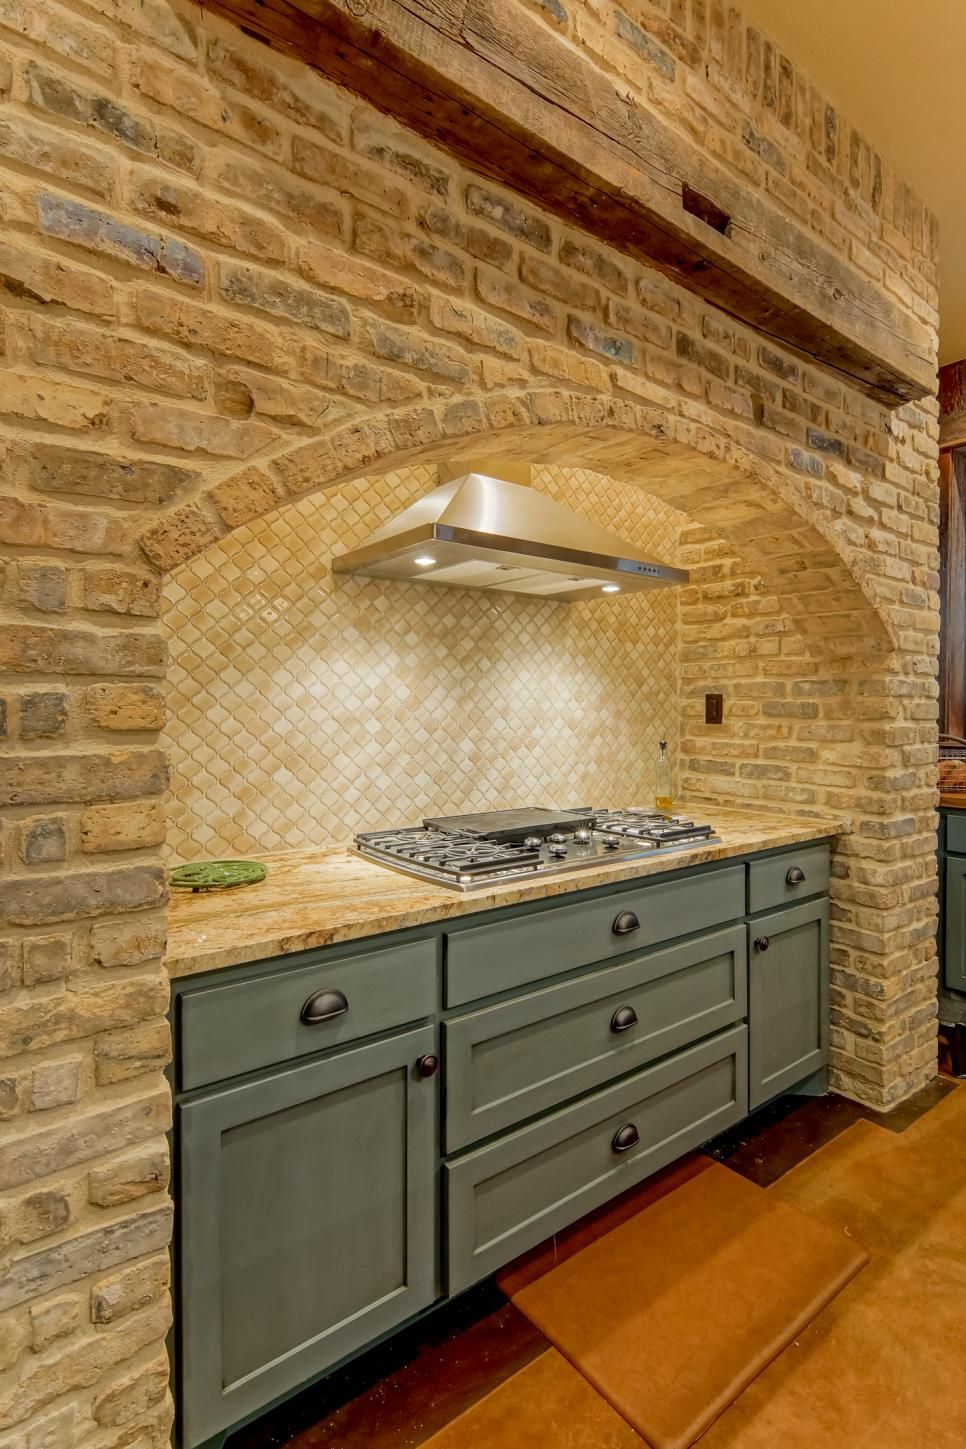 A Beautiful Brick Surround Frames This Stove Area With An